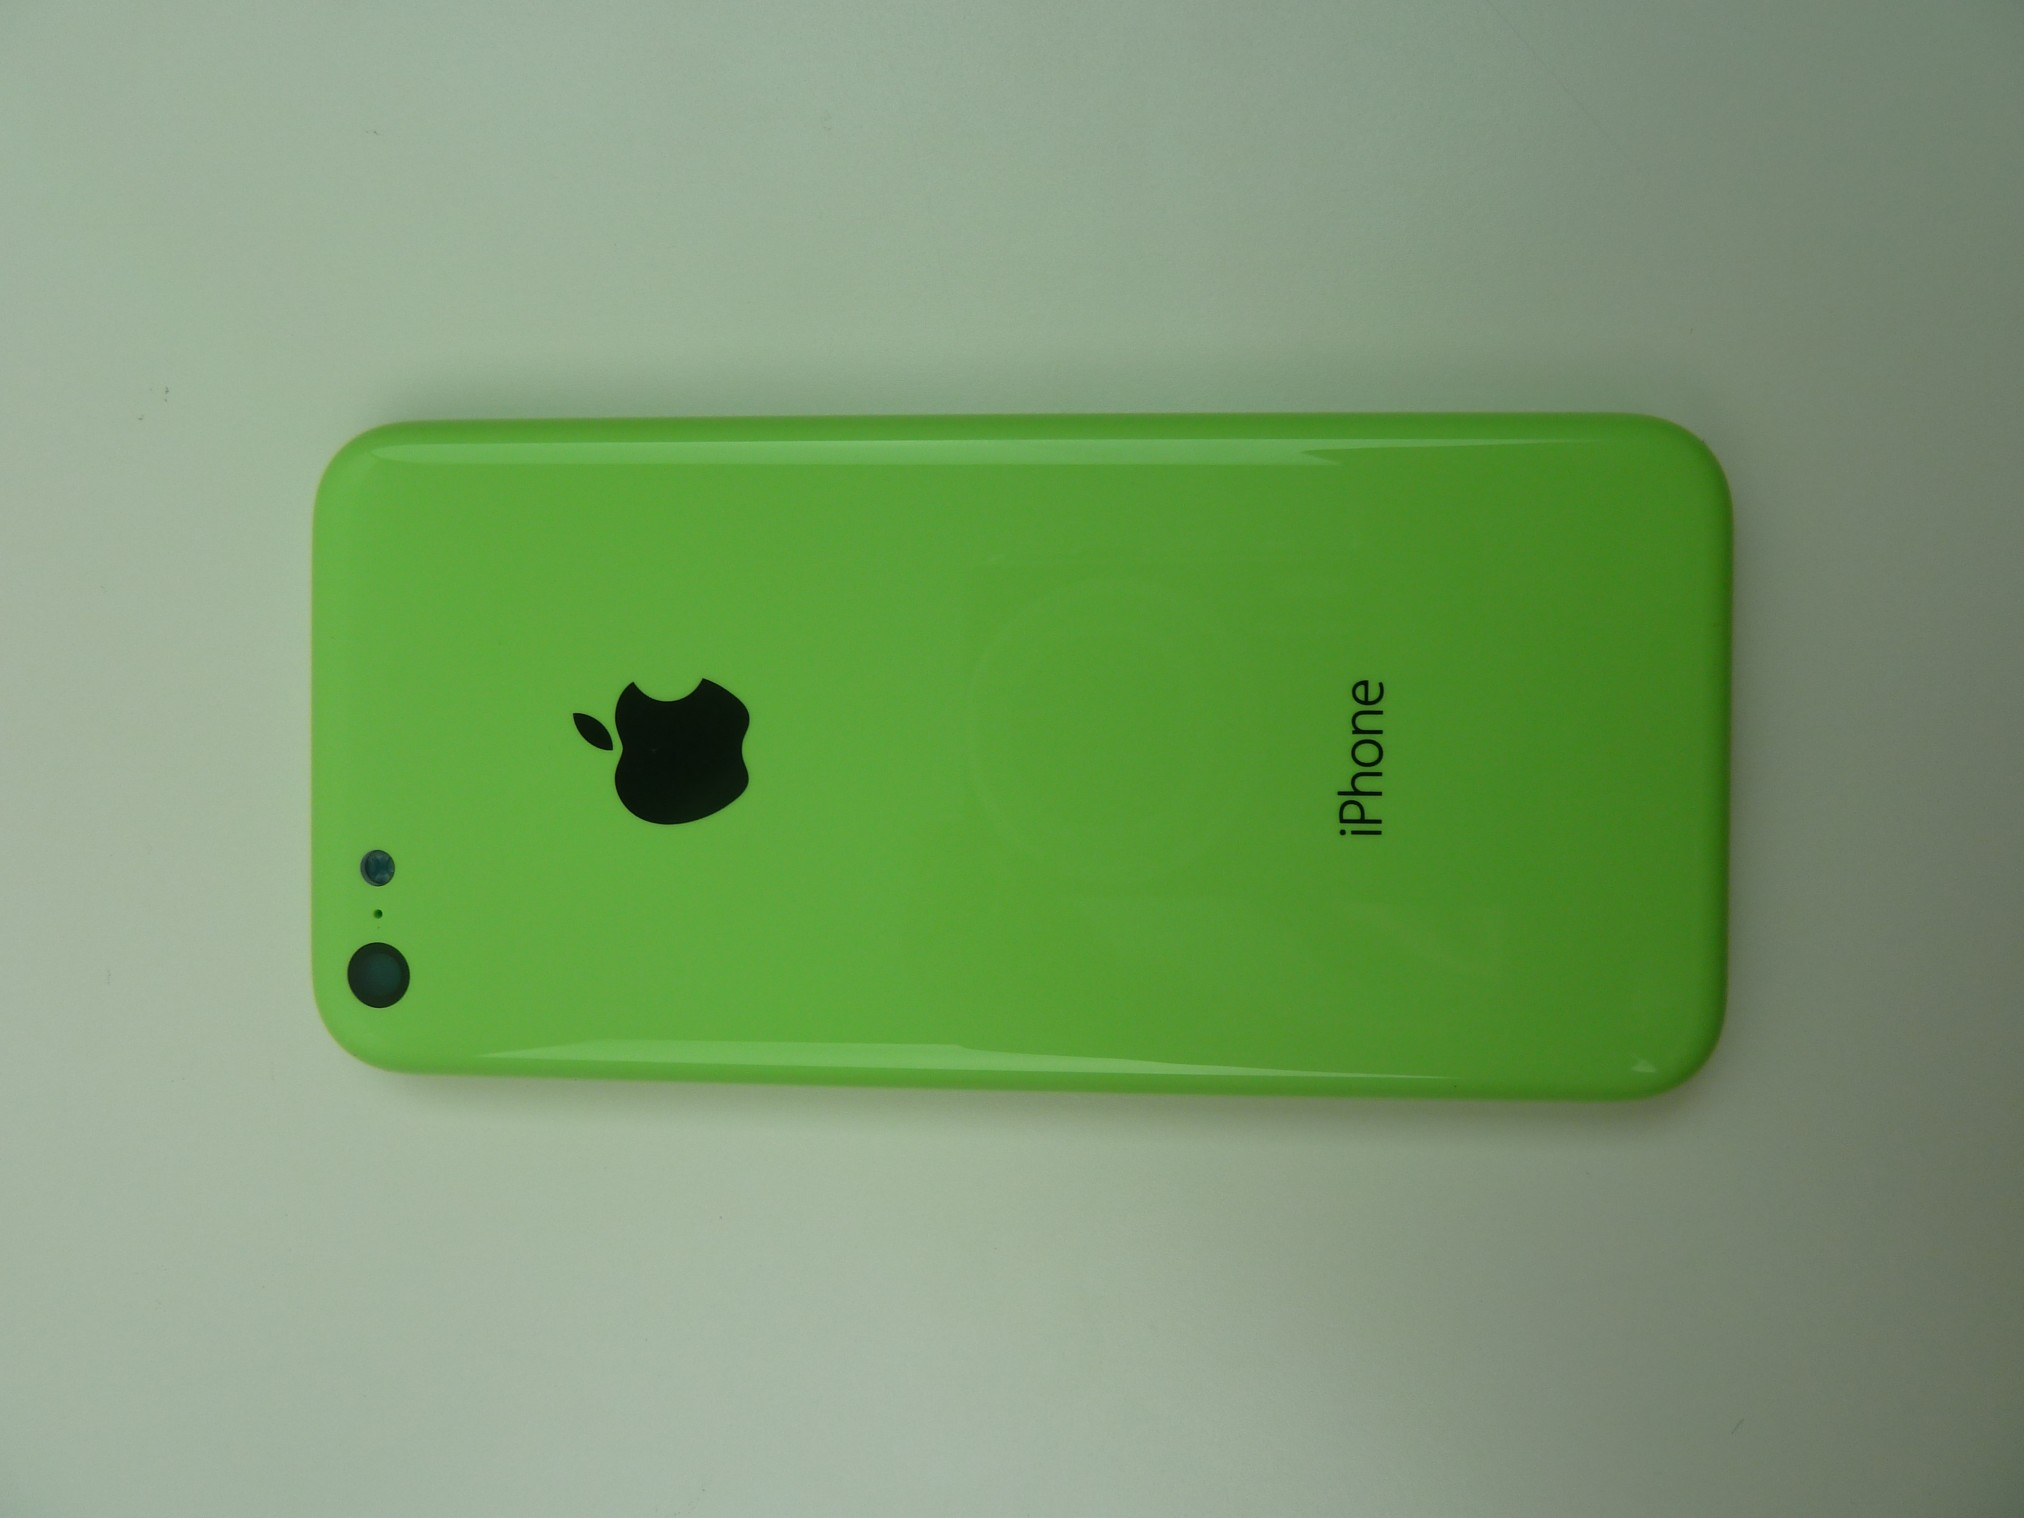 Apple iPhone 5C In Glossy Green Colour Images Surface - Tech News ...